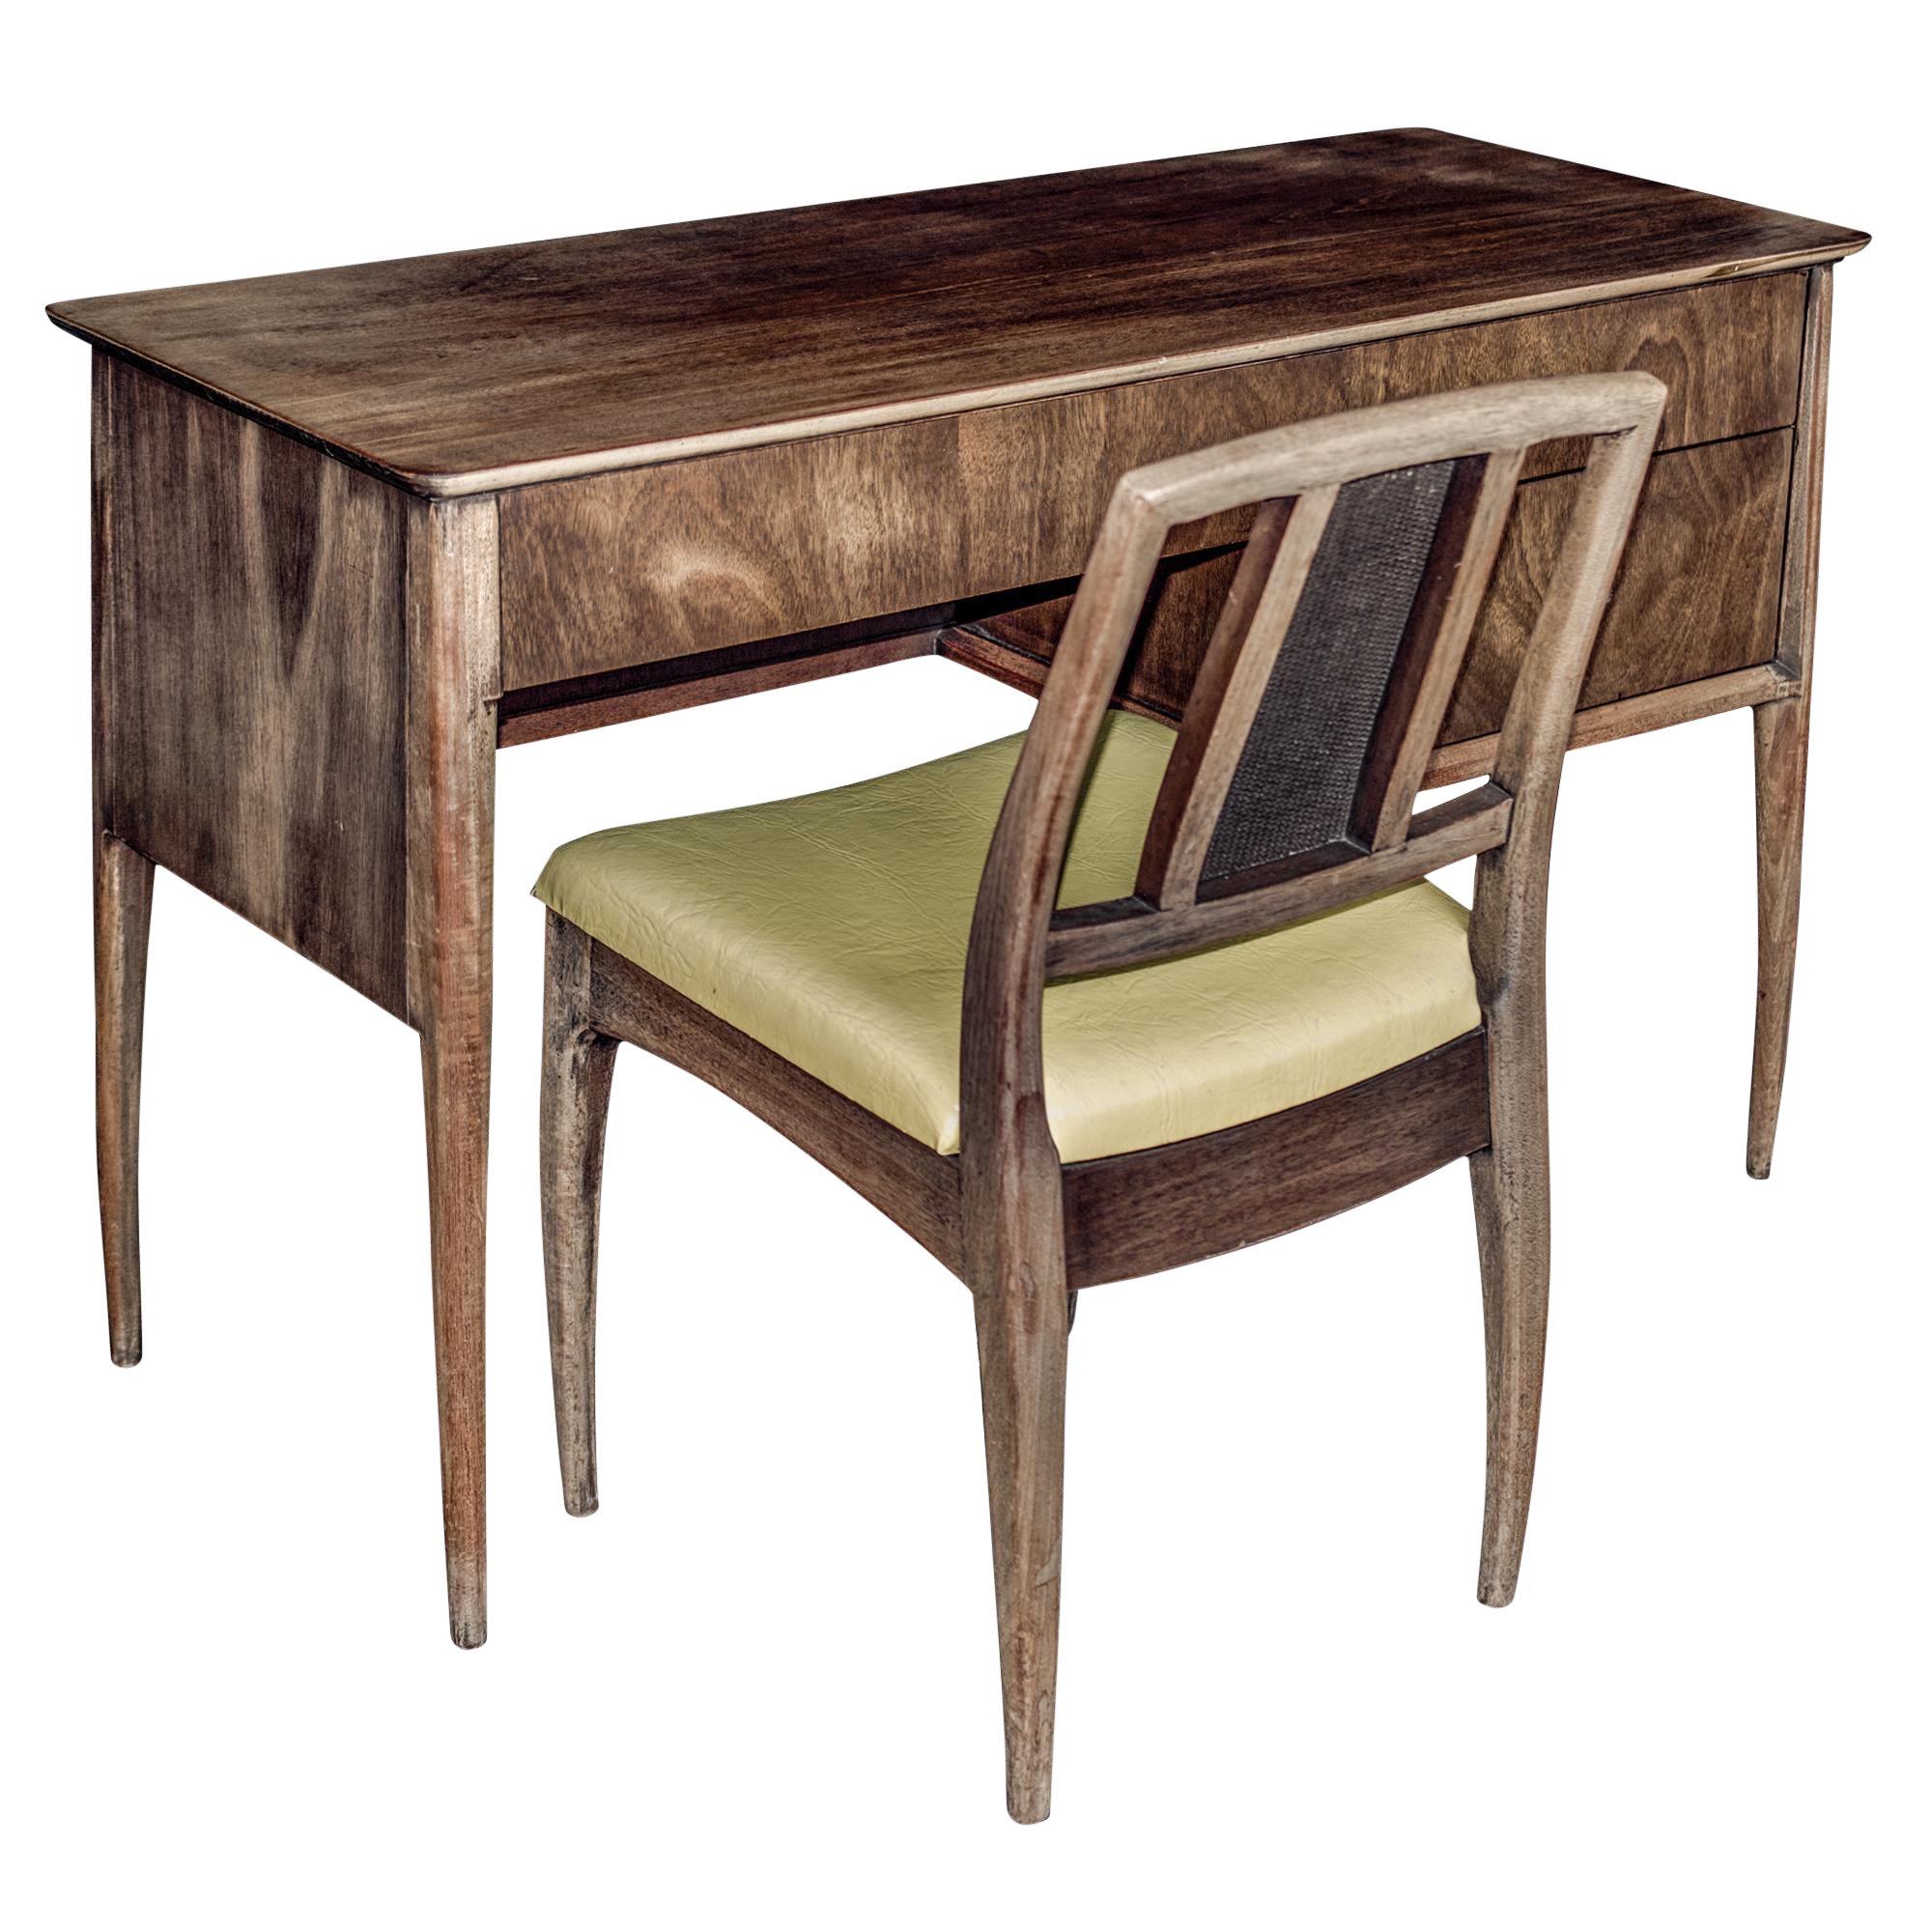 Charmant John Stuart Inc. Raymond Sabota Writing Desk U0026 Chair For Sale